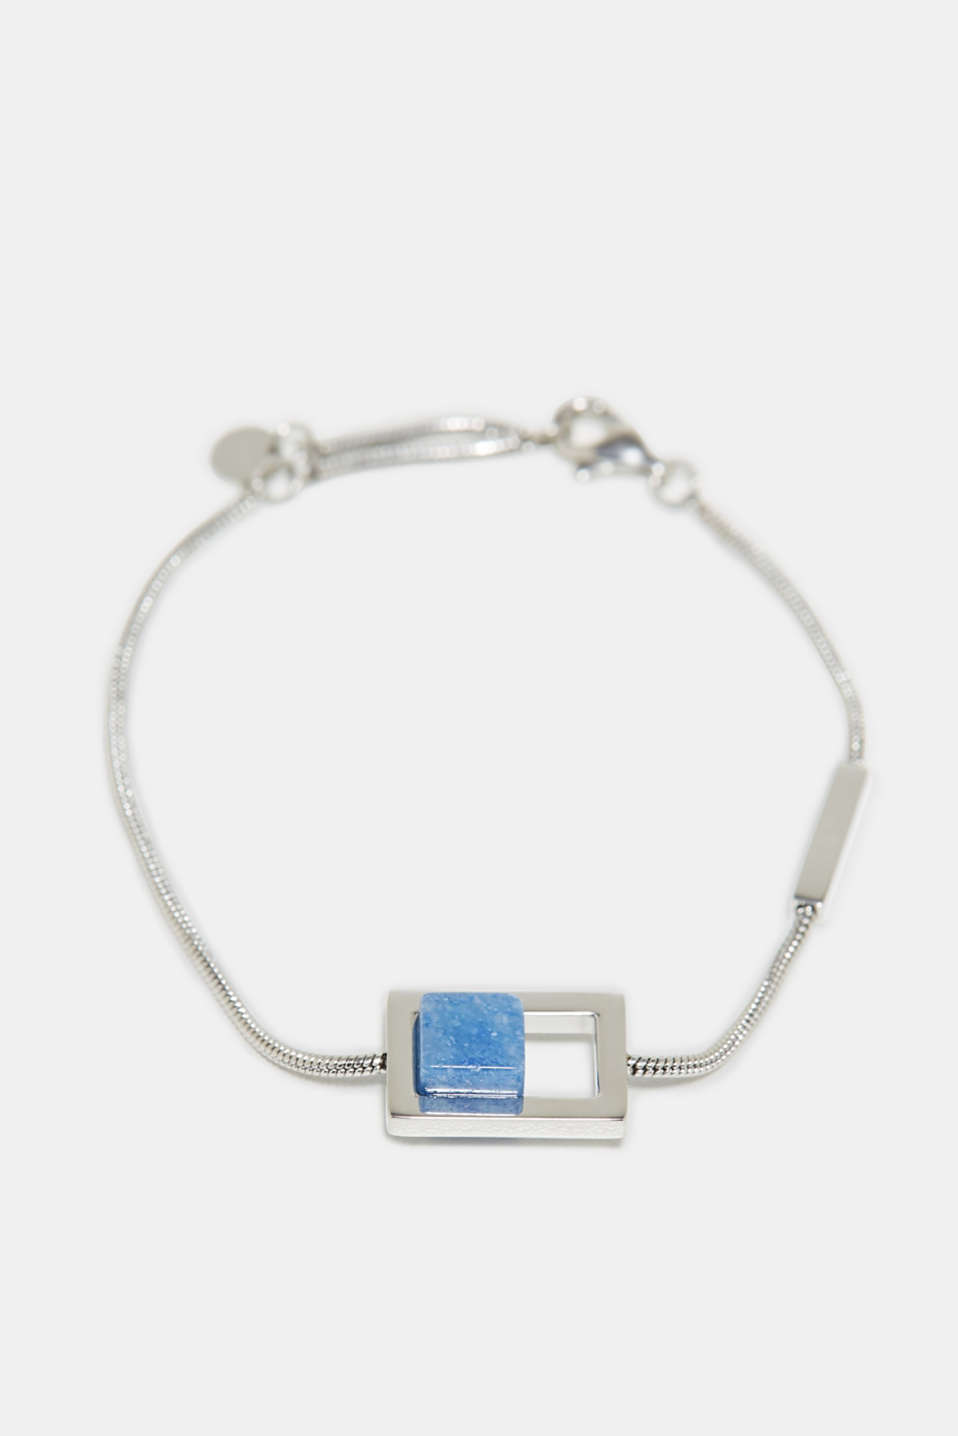 Esprit - Bracelet with artificial gemstone, made of stainless steel